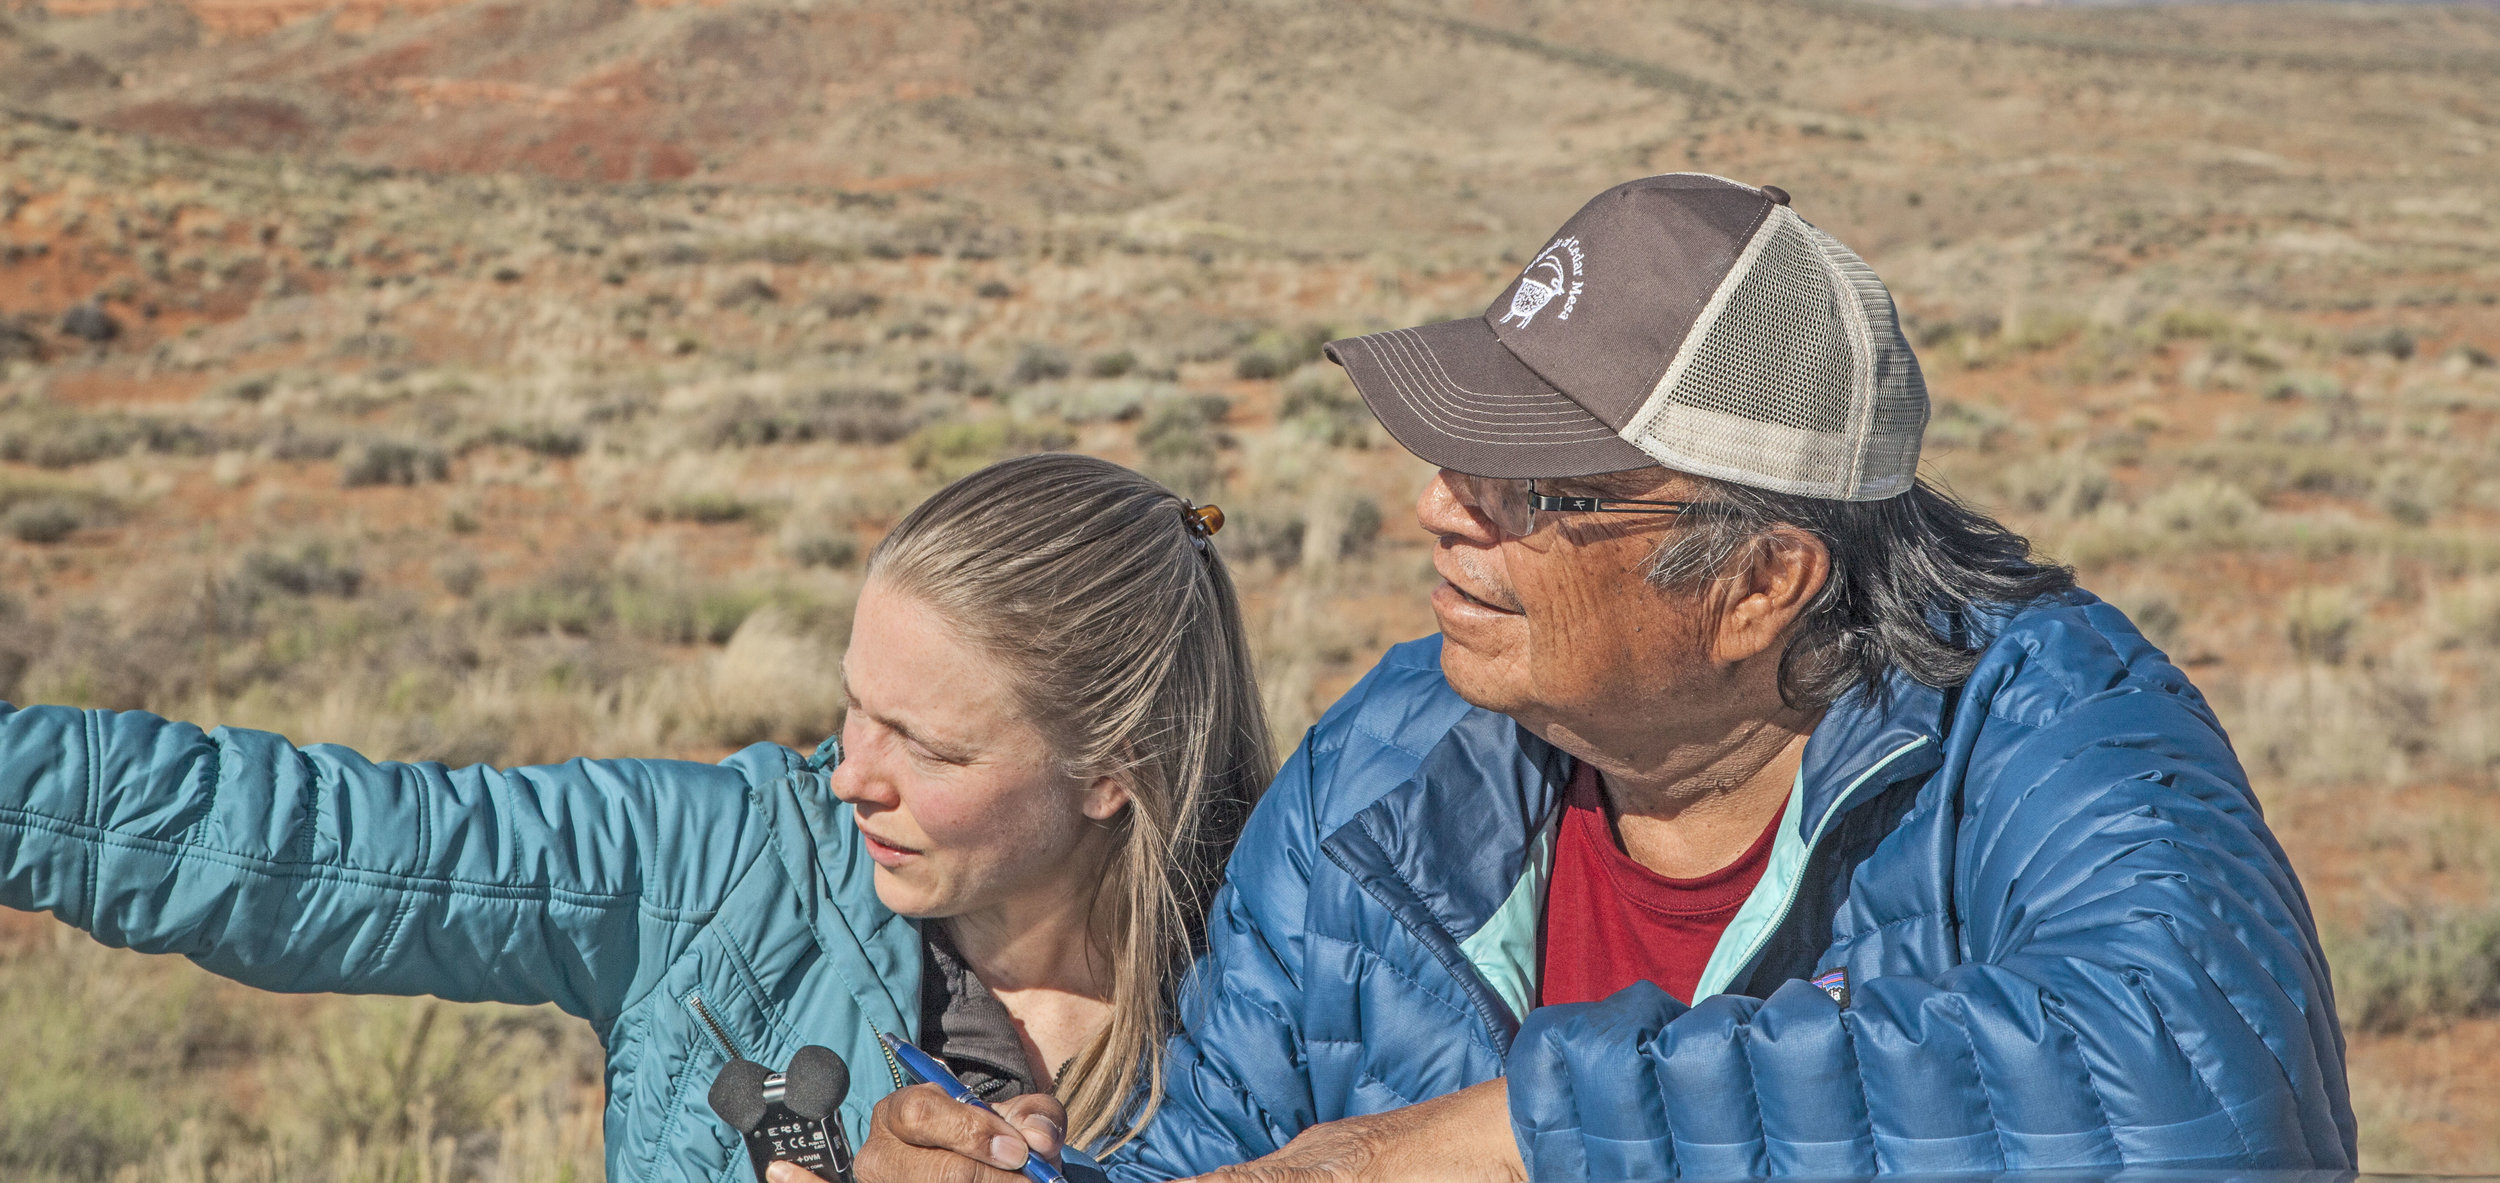 That's me on the left. Next to me is Jonah Yellowman, a Navajo spiritual healer who is one of many people featured in my forthcoming book,  Bears Ears Country: Seeking Common Ground on Sacred Land.  Learn more at    BearsEarsCountry.com.